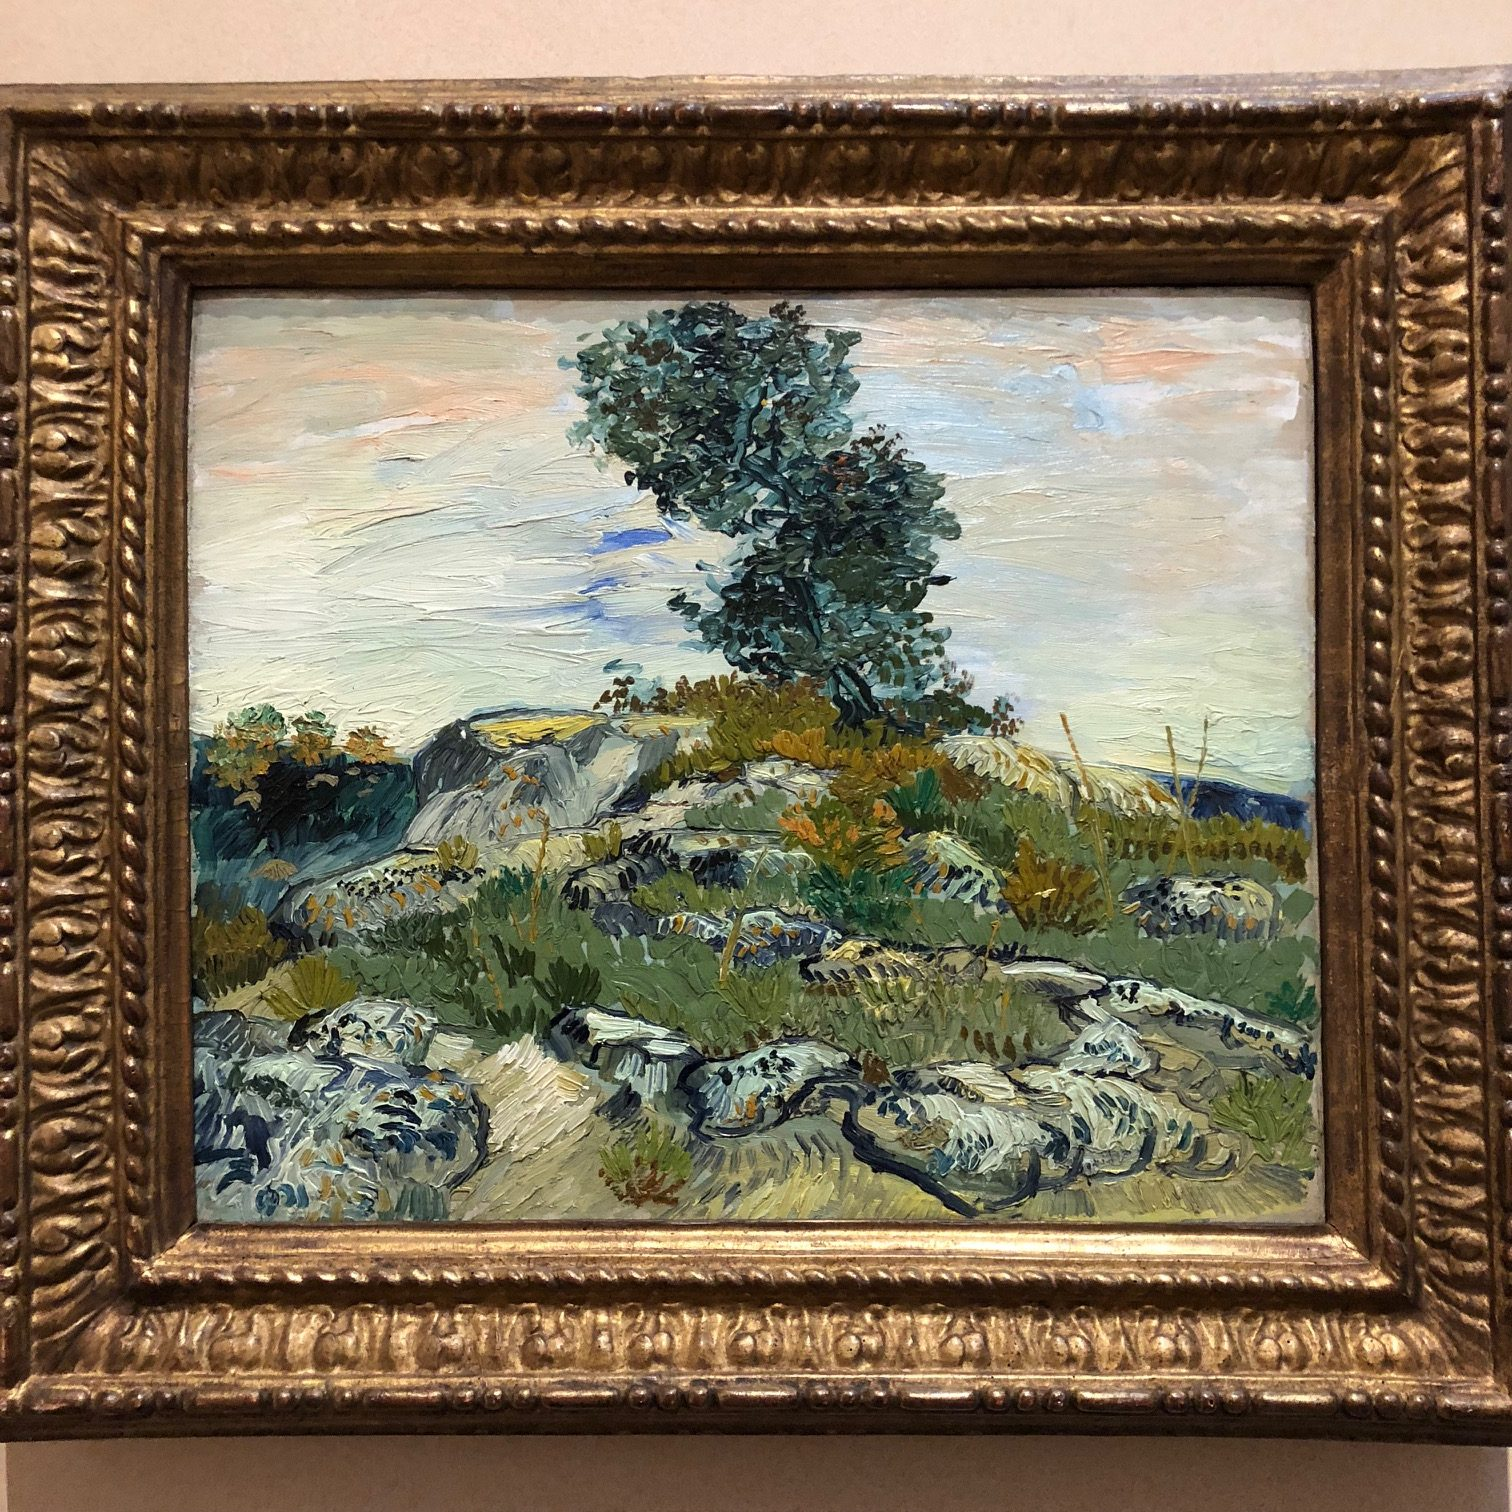 "Close-up Details of Van Gogh's Painting ""The Rocks"""